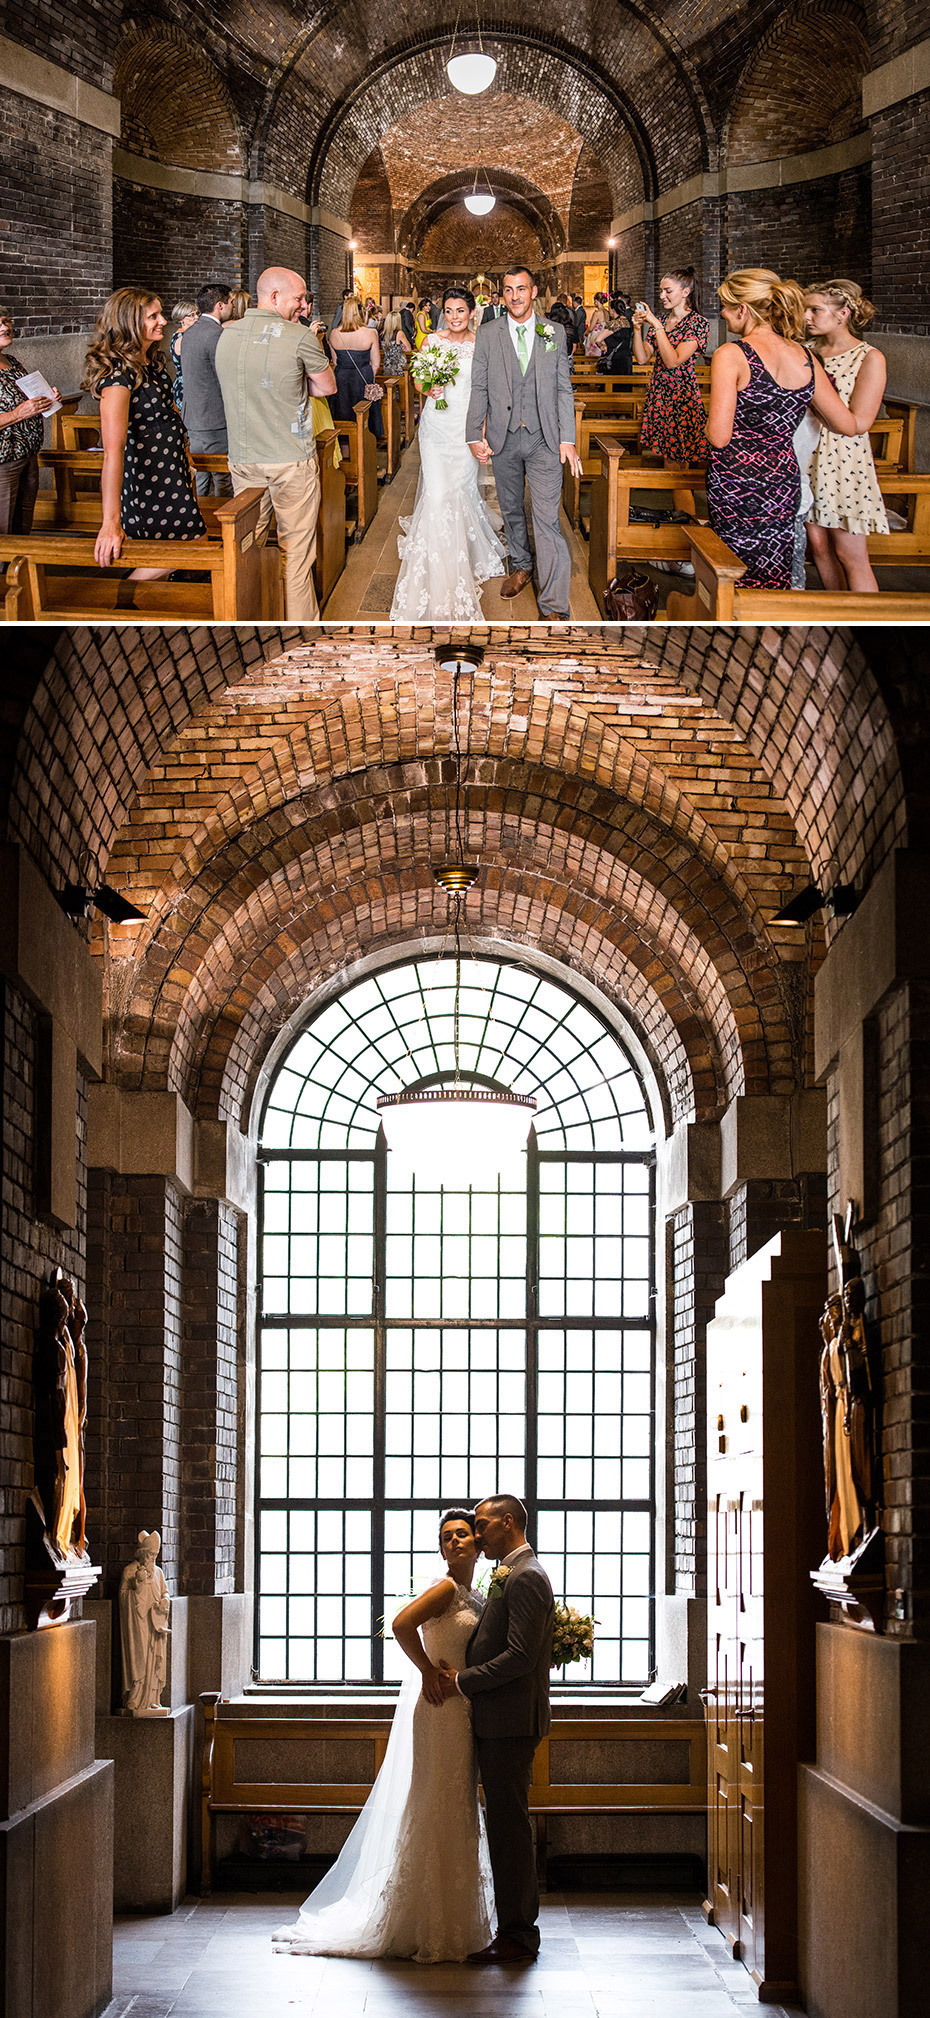 Liverpool Metropolitan Cathedral Crypt Weddings